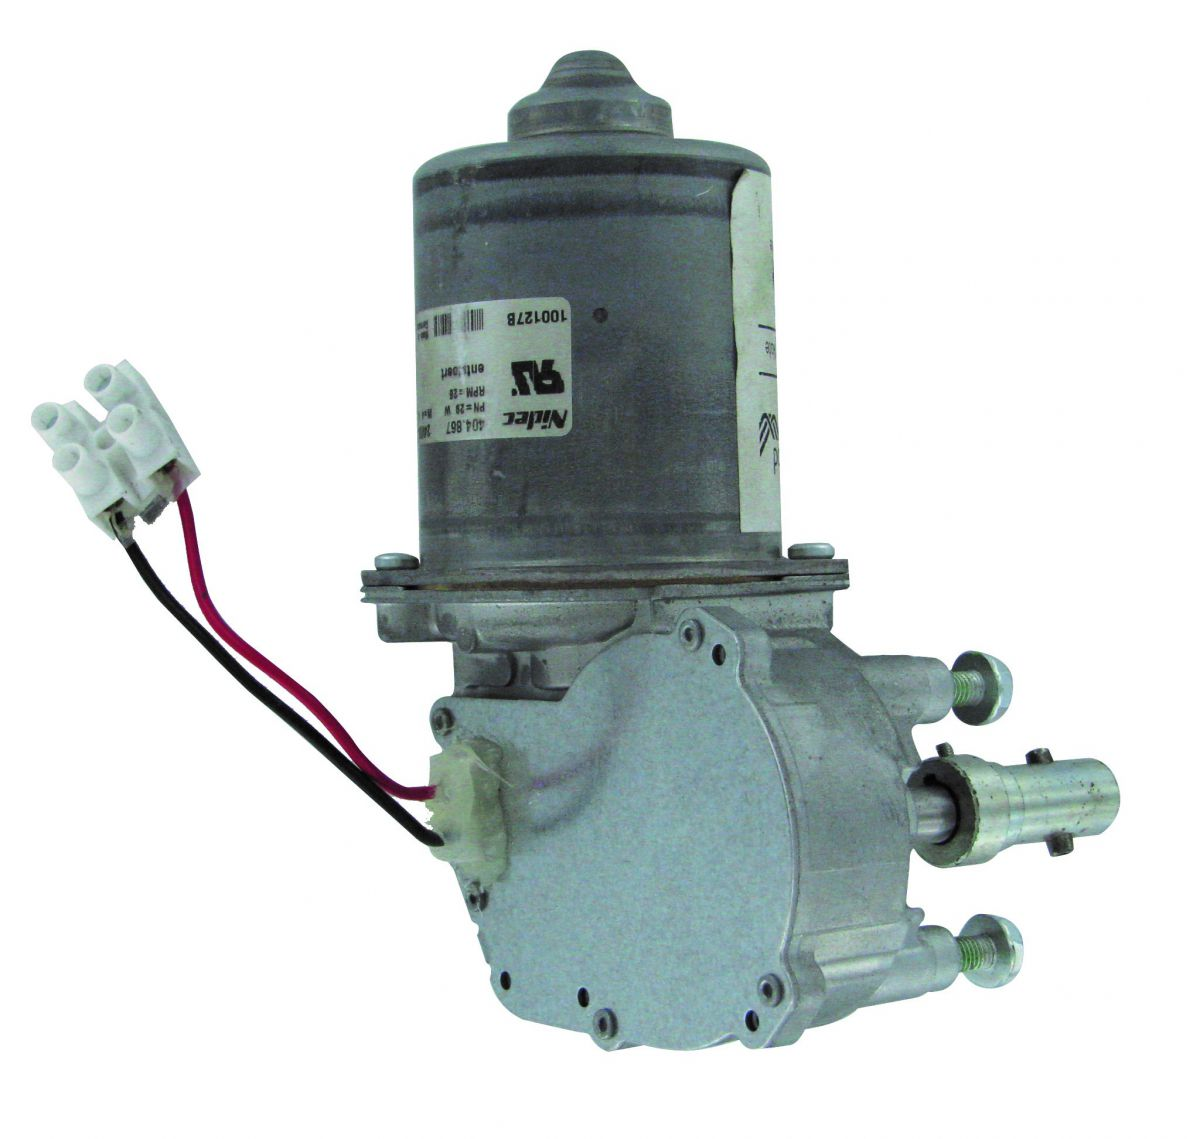 motor 24v dc t3 26rpm with connection wires for fullwood